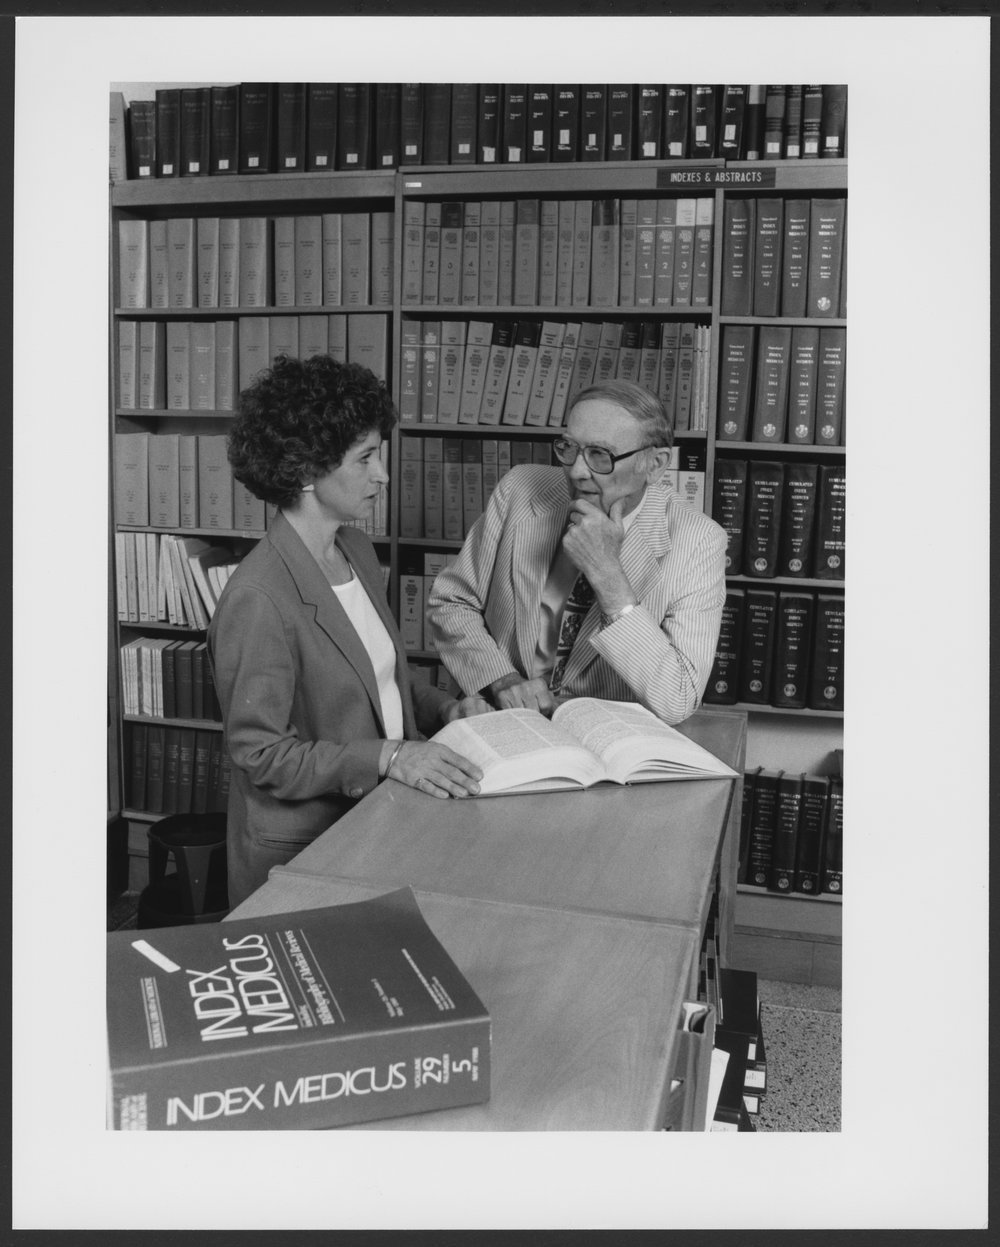 Menninger Foundation Professional Library, Topeka, Kansas - Marcy Schott, Research Librarian,  interviews Syndney Smith, Ph.D. for a literature search for him.